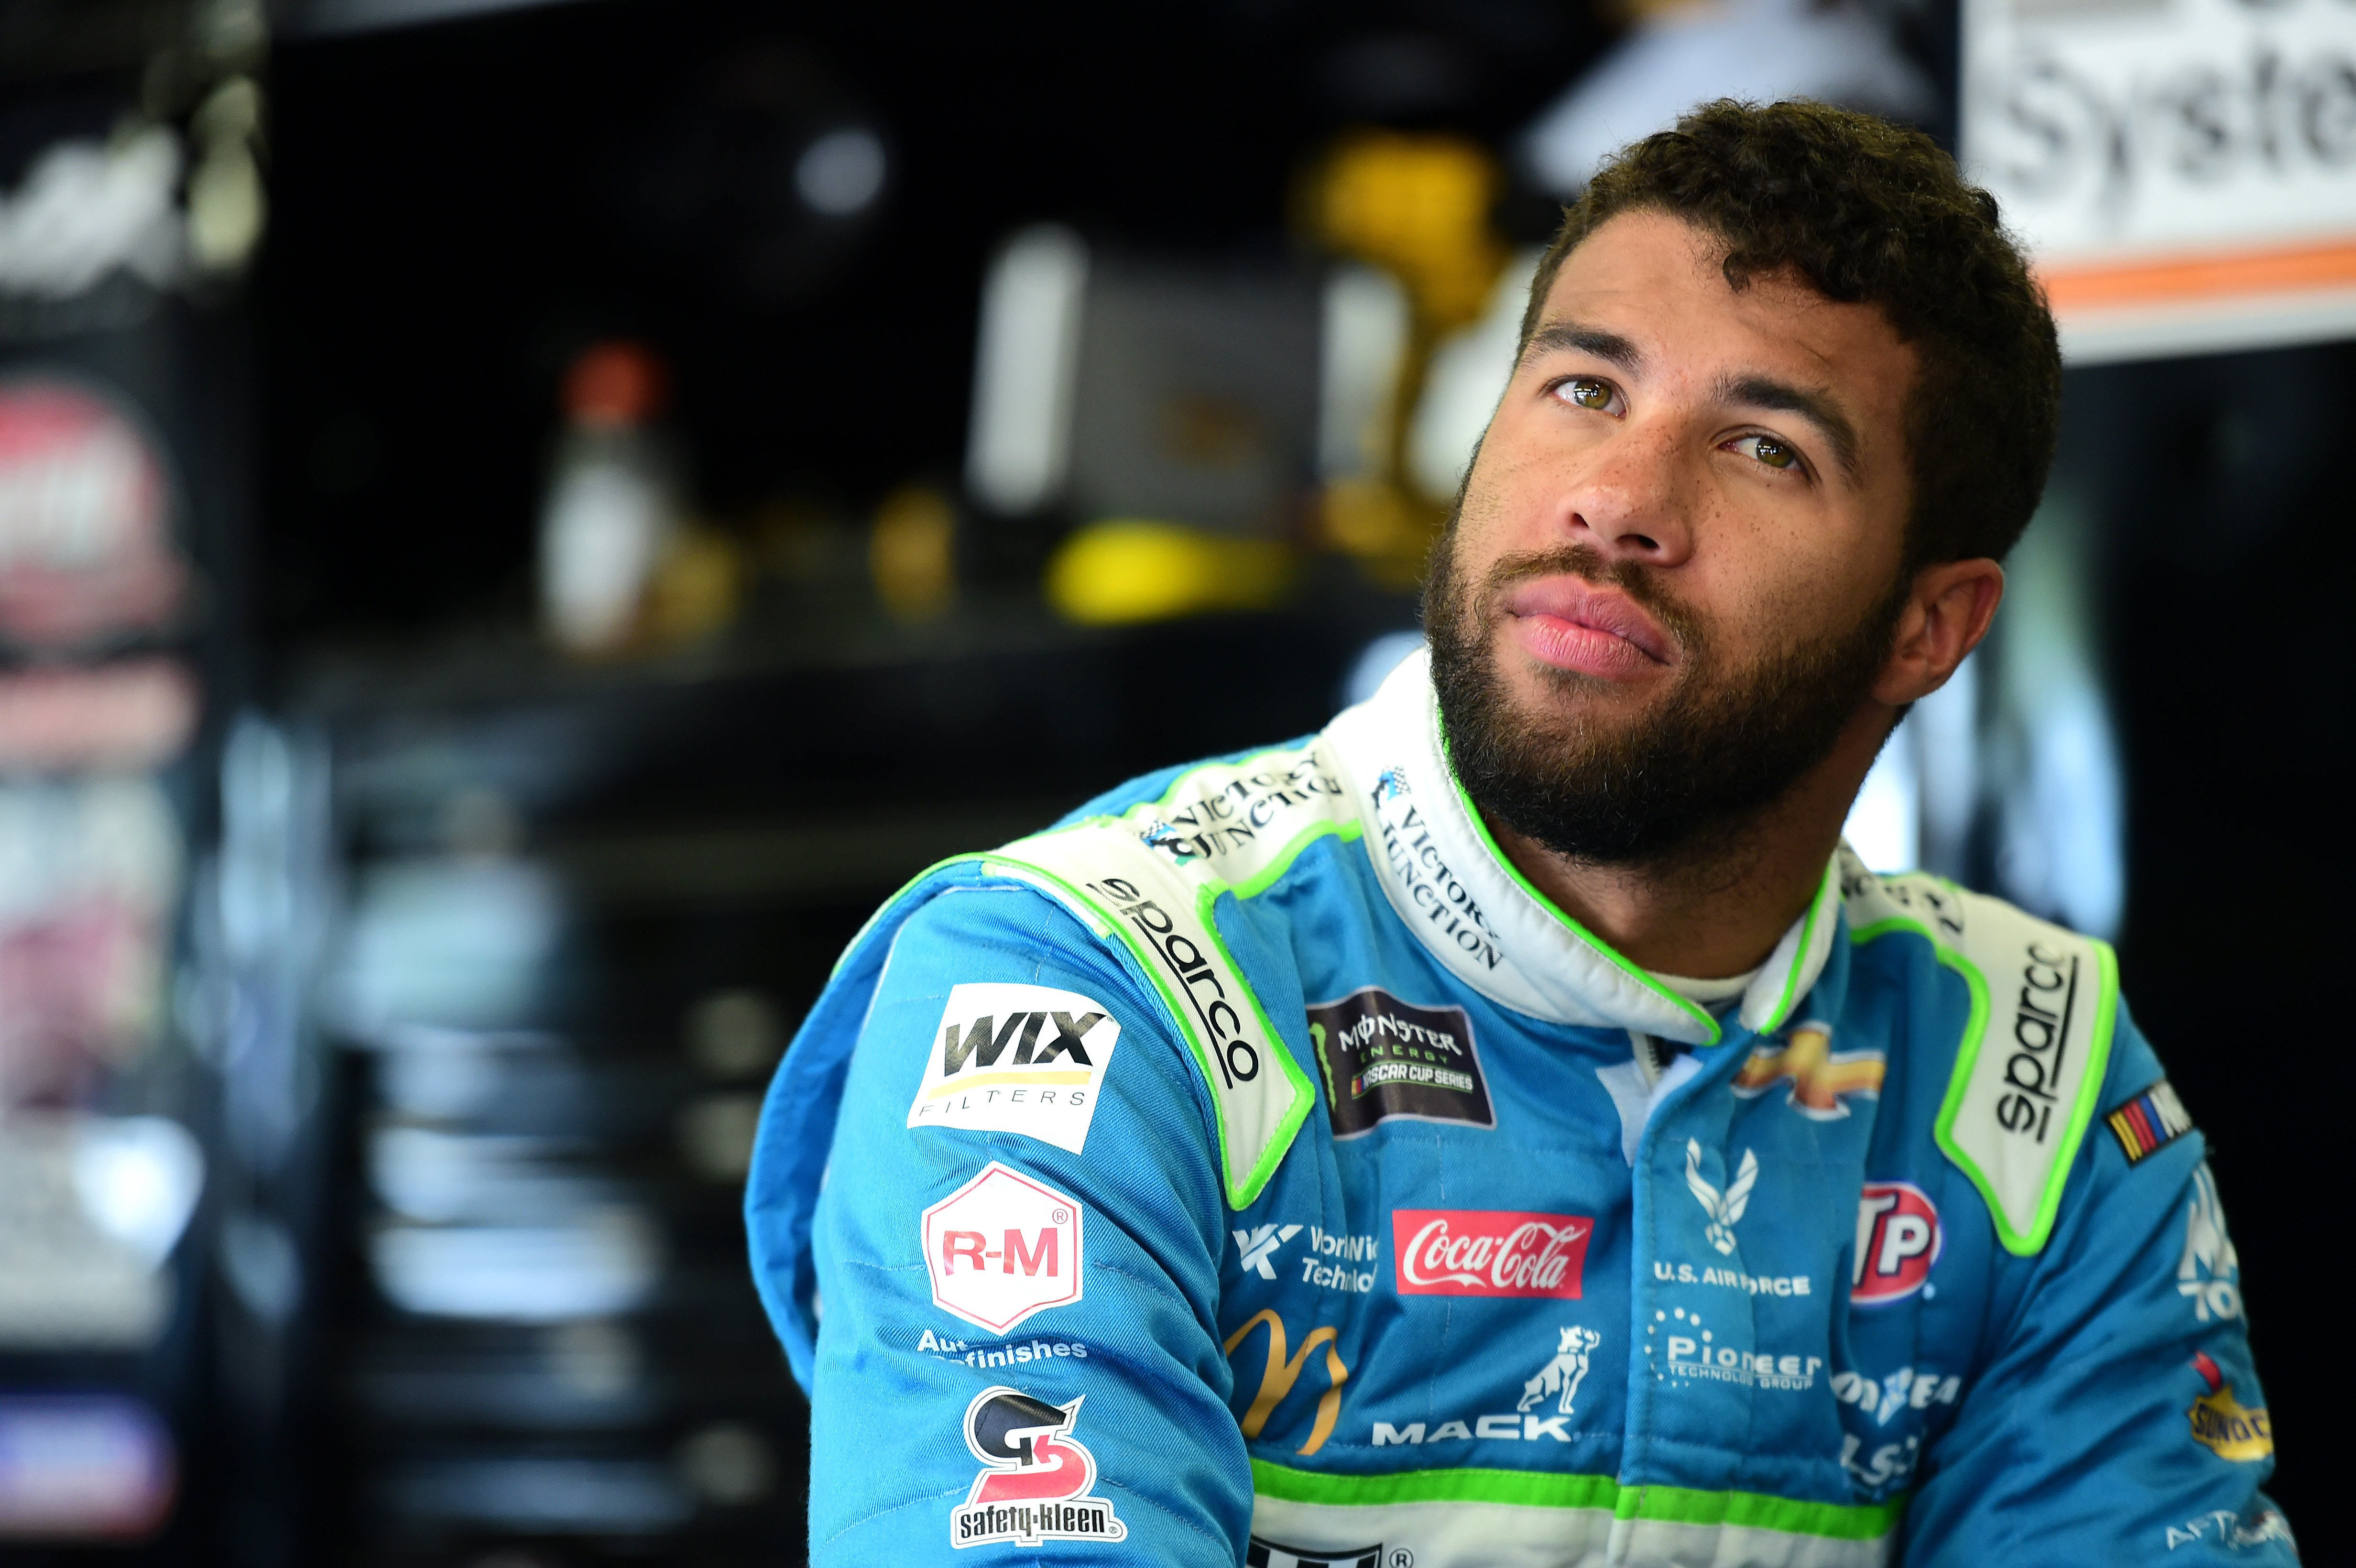 Bubba Wallace at New Hampshire Motor Speedway on July 20, 2019, in Loudon, New Hampshire.   Source: Getty Images.